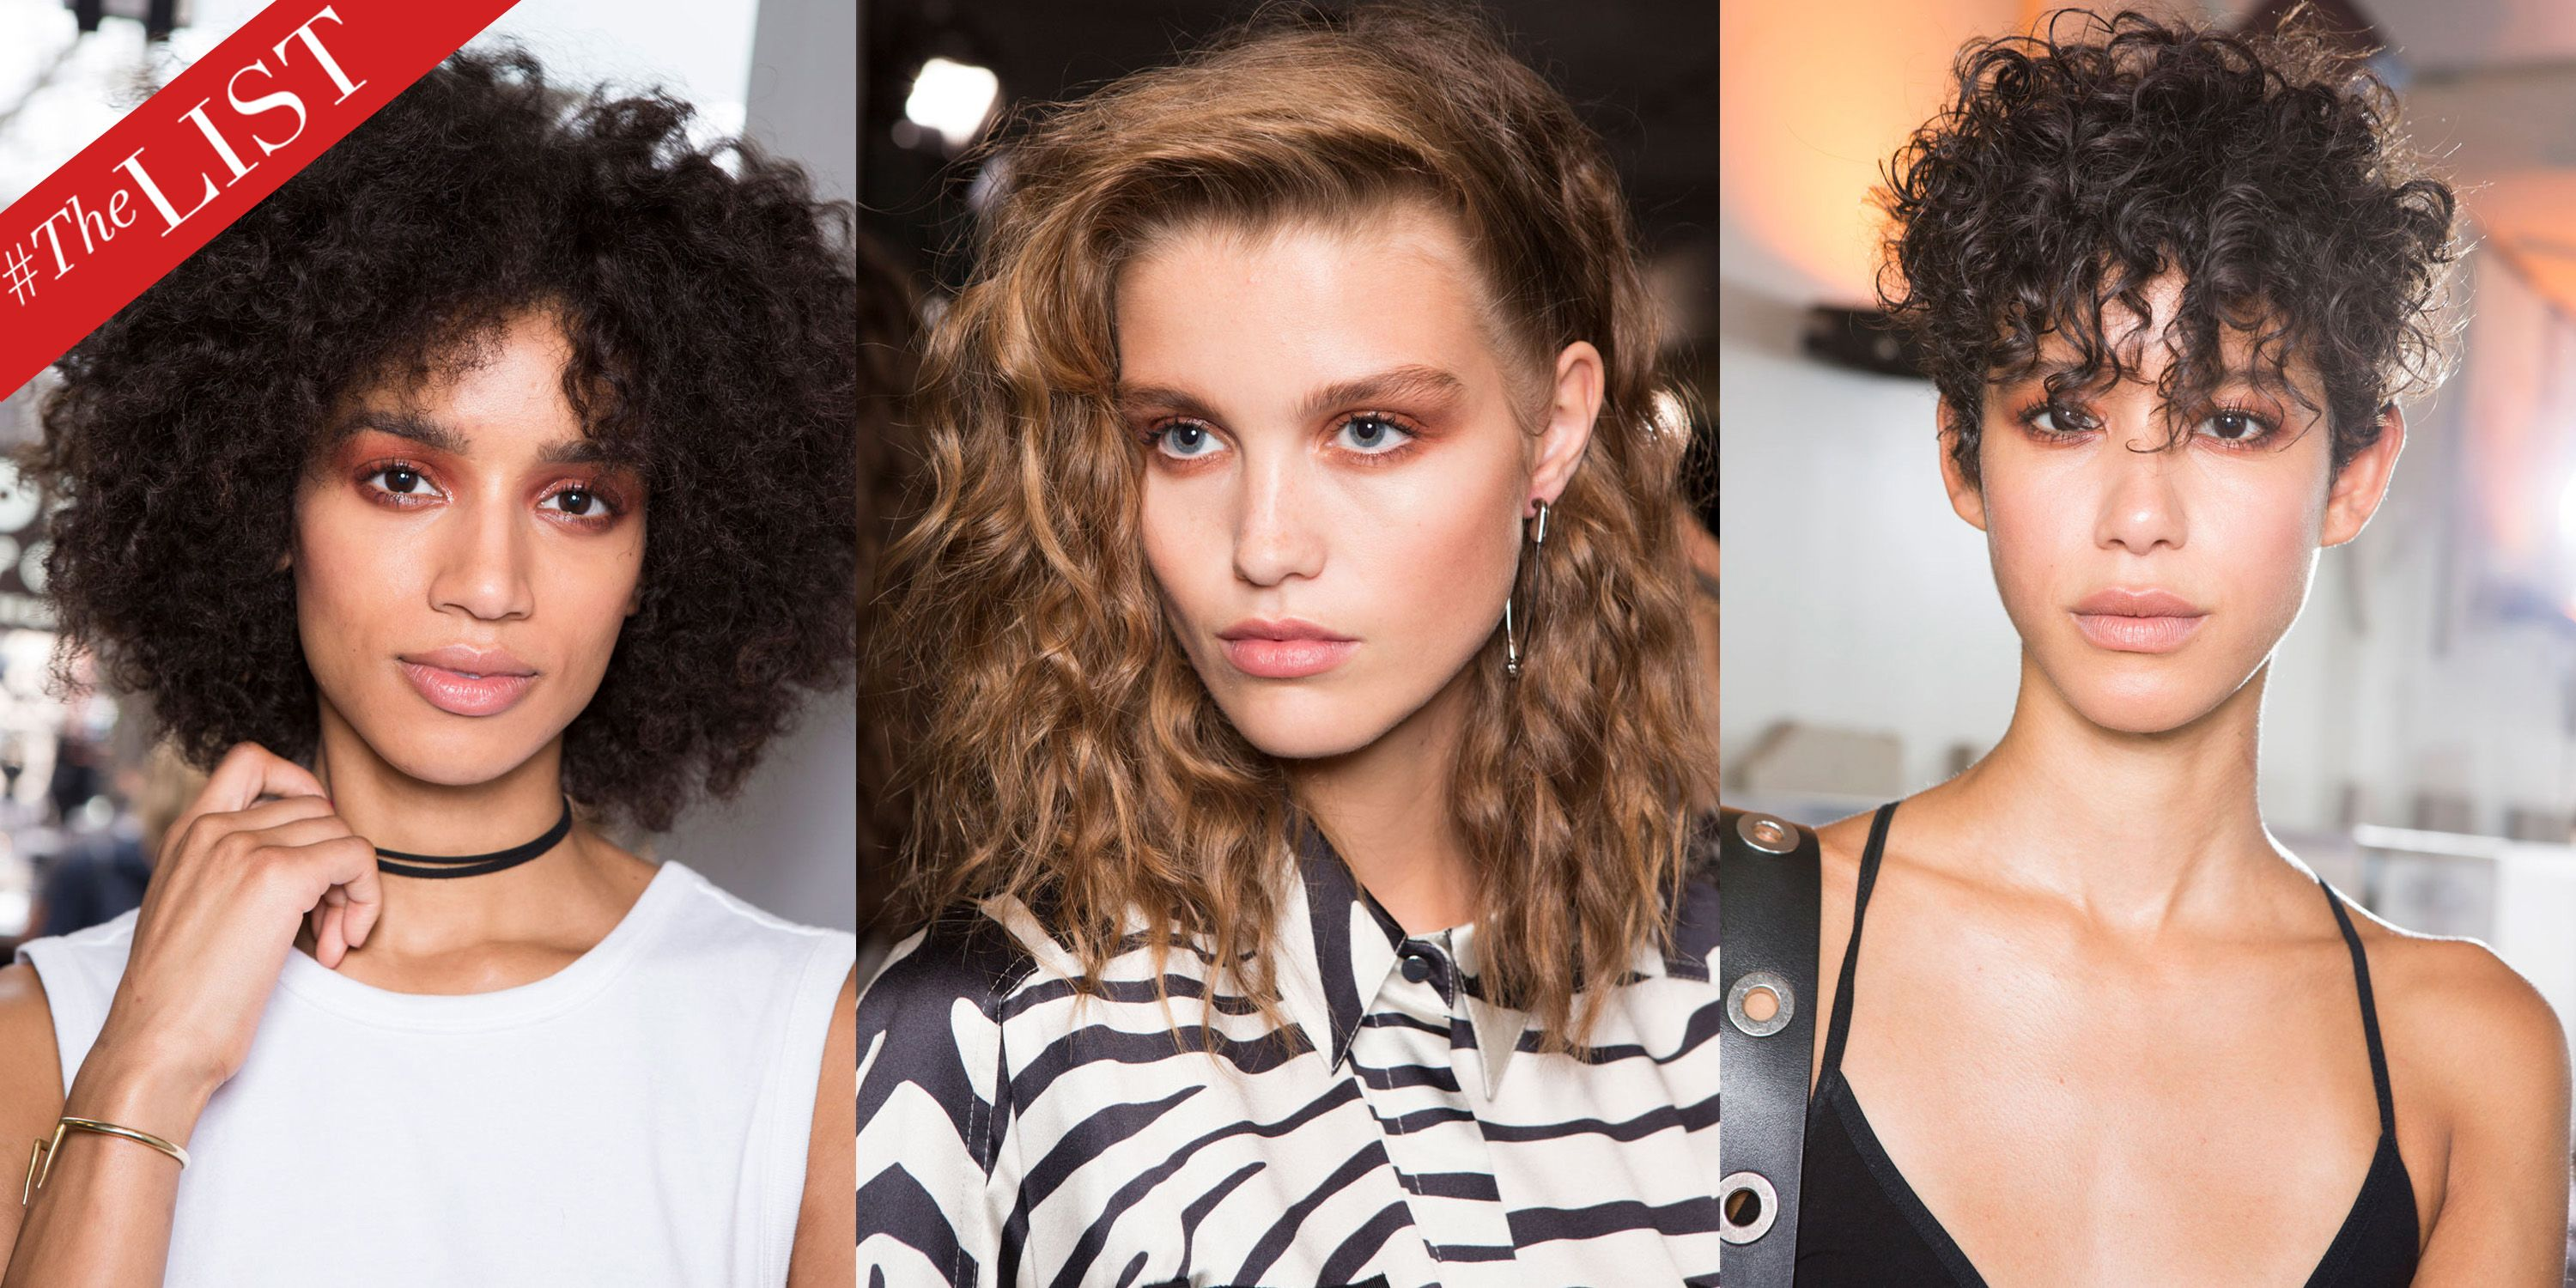 Curly Hair Ideas - Models With Curly Hair Fashion Week Runways